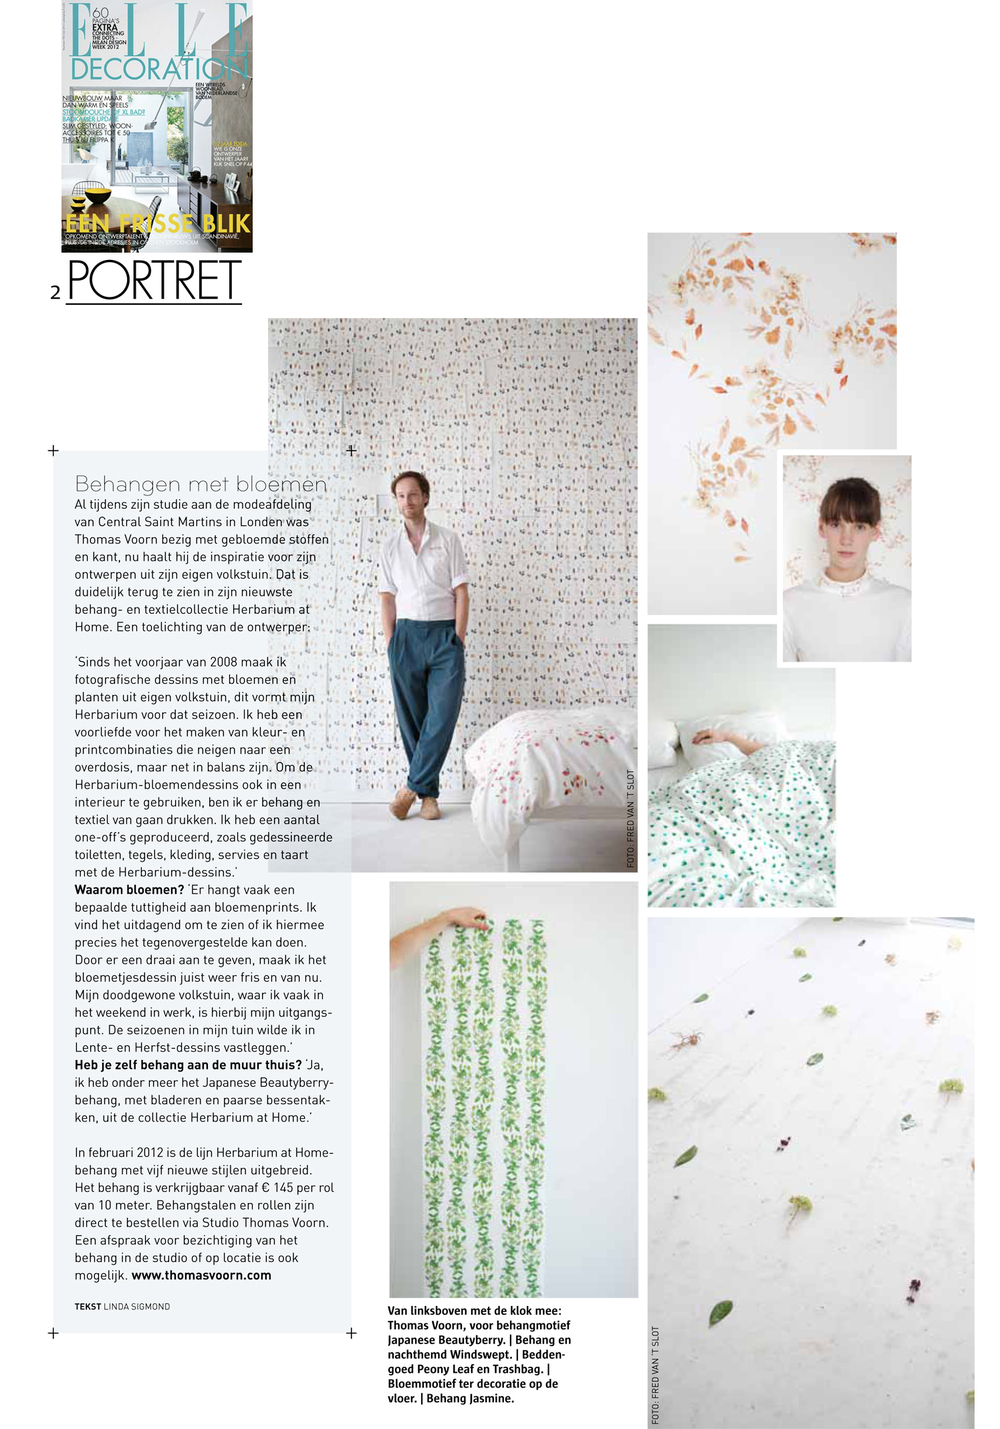 Press-ELLE-DECO-interview-magazine-on-Thomas-Voorn-jbct.jpg